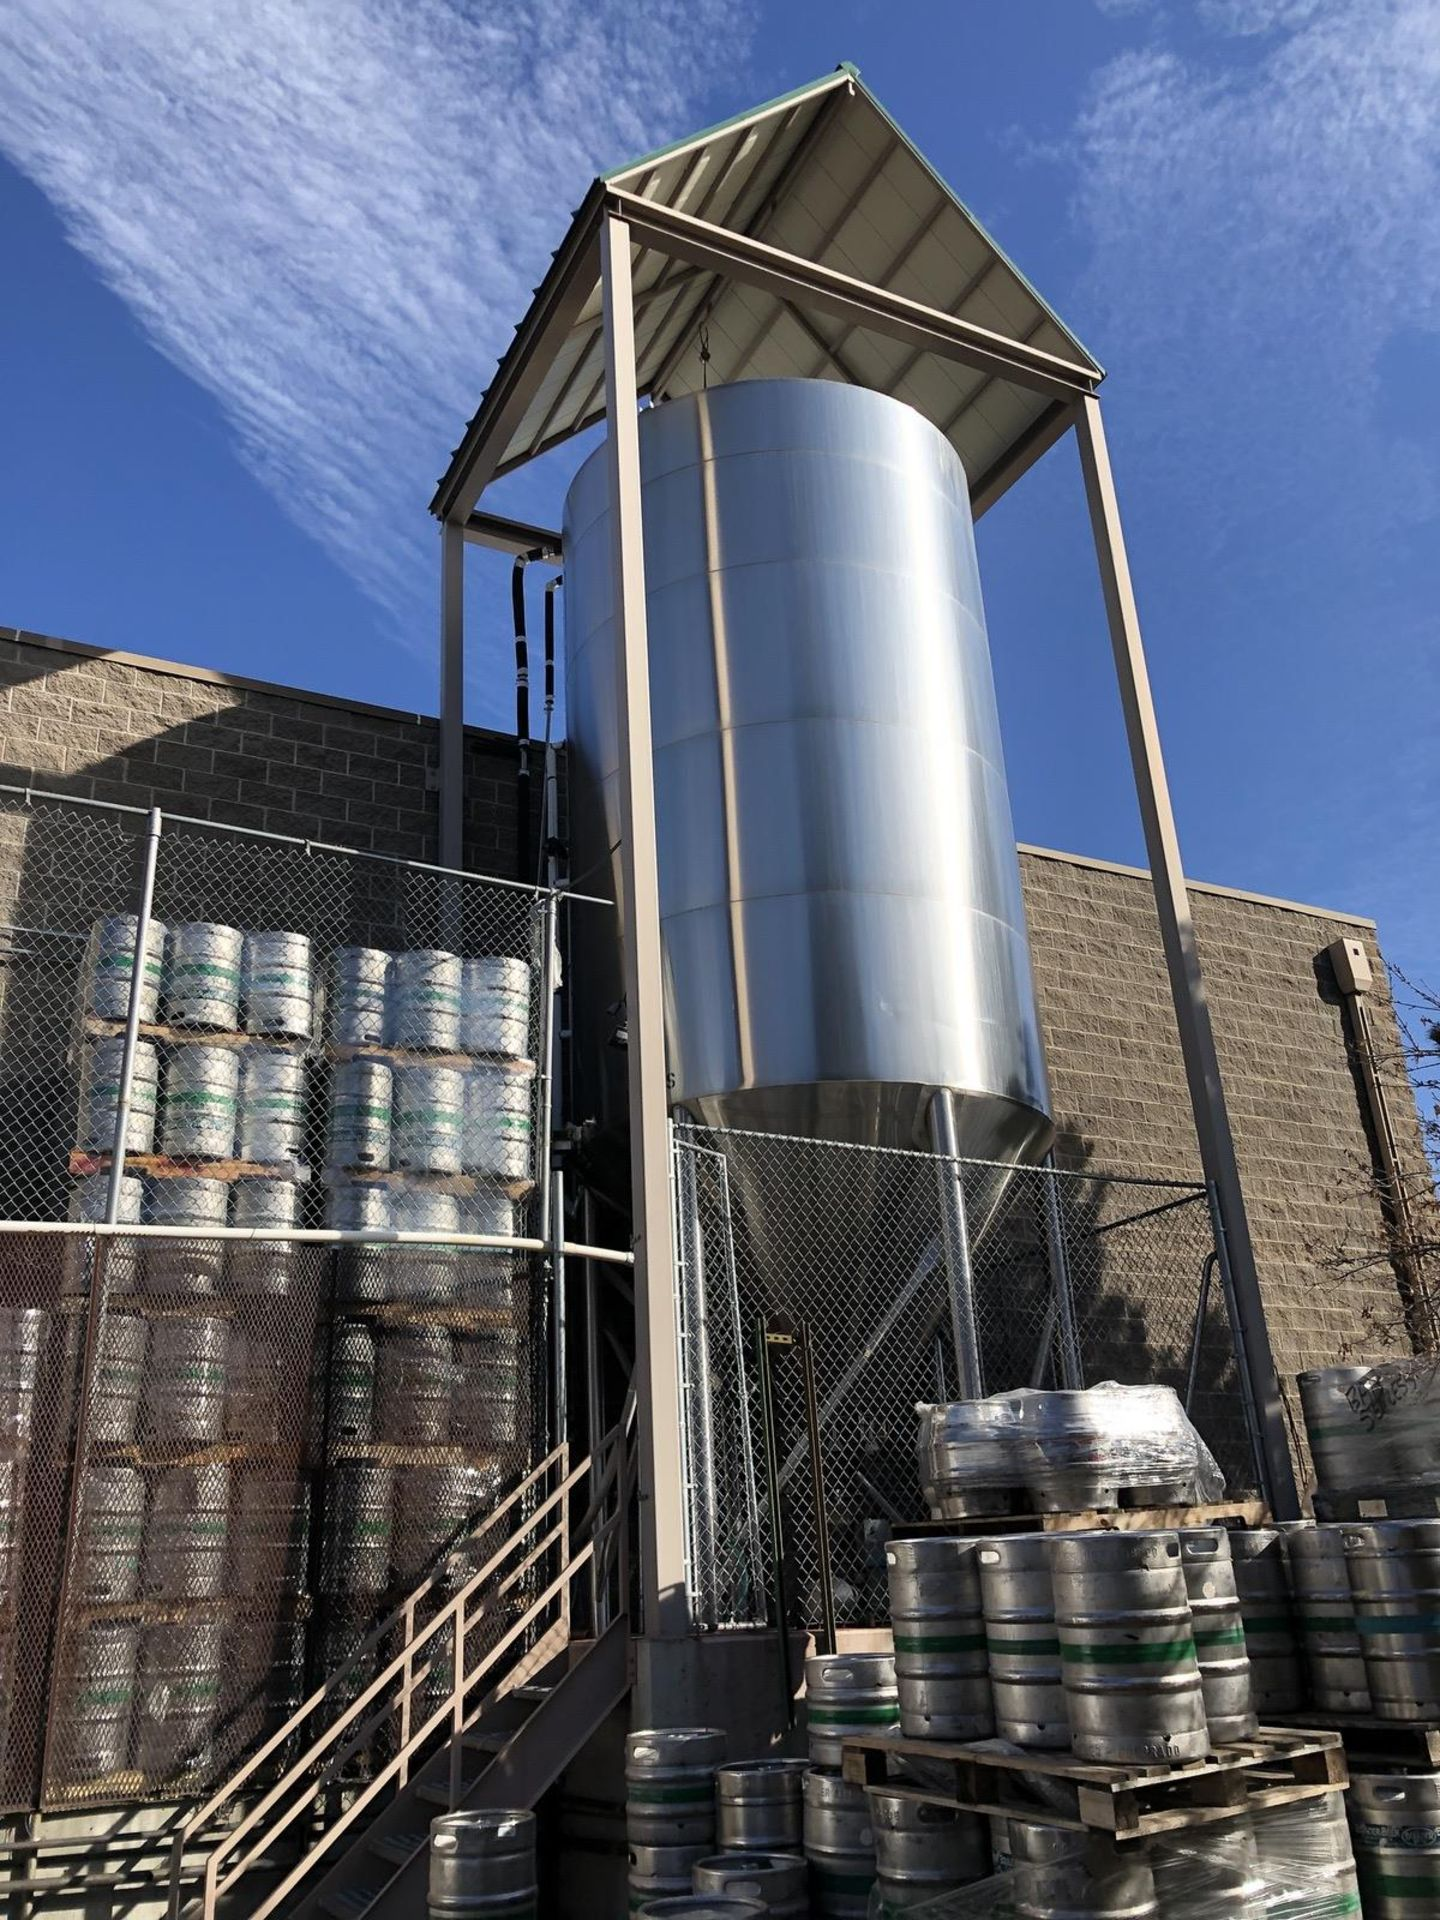 Lot 2 - JV Northwest 300 BBL Fermenter, Glycol Jacketed, Stainless Steel, Approx Dimensions | Rig Fee: $4500